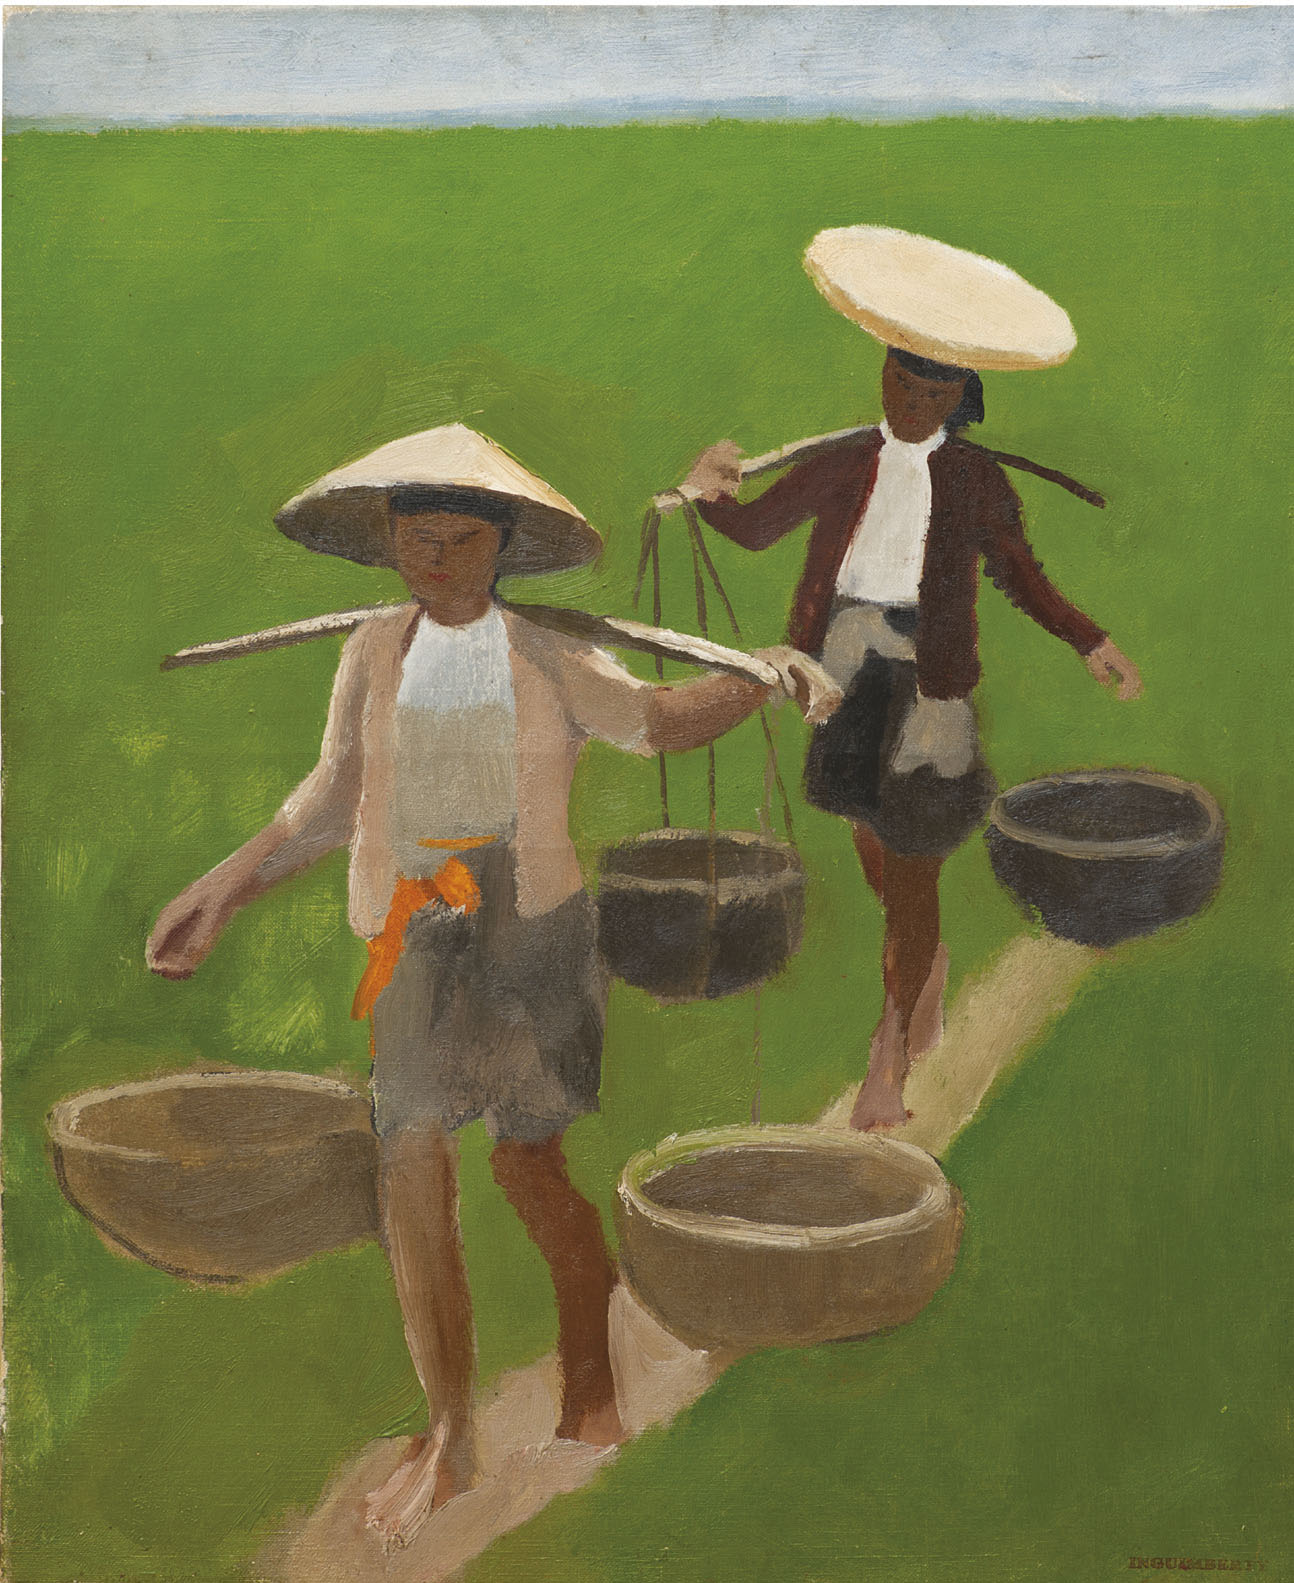 Workers in the rice field